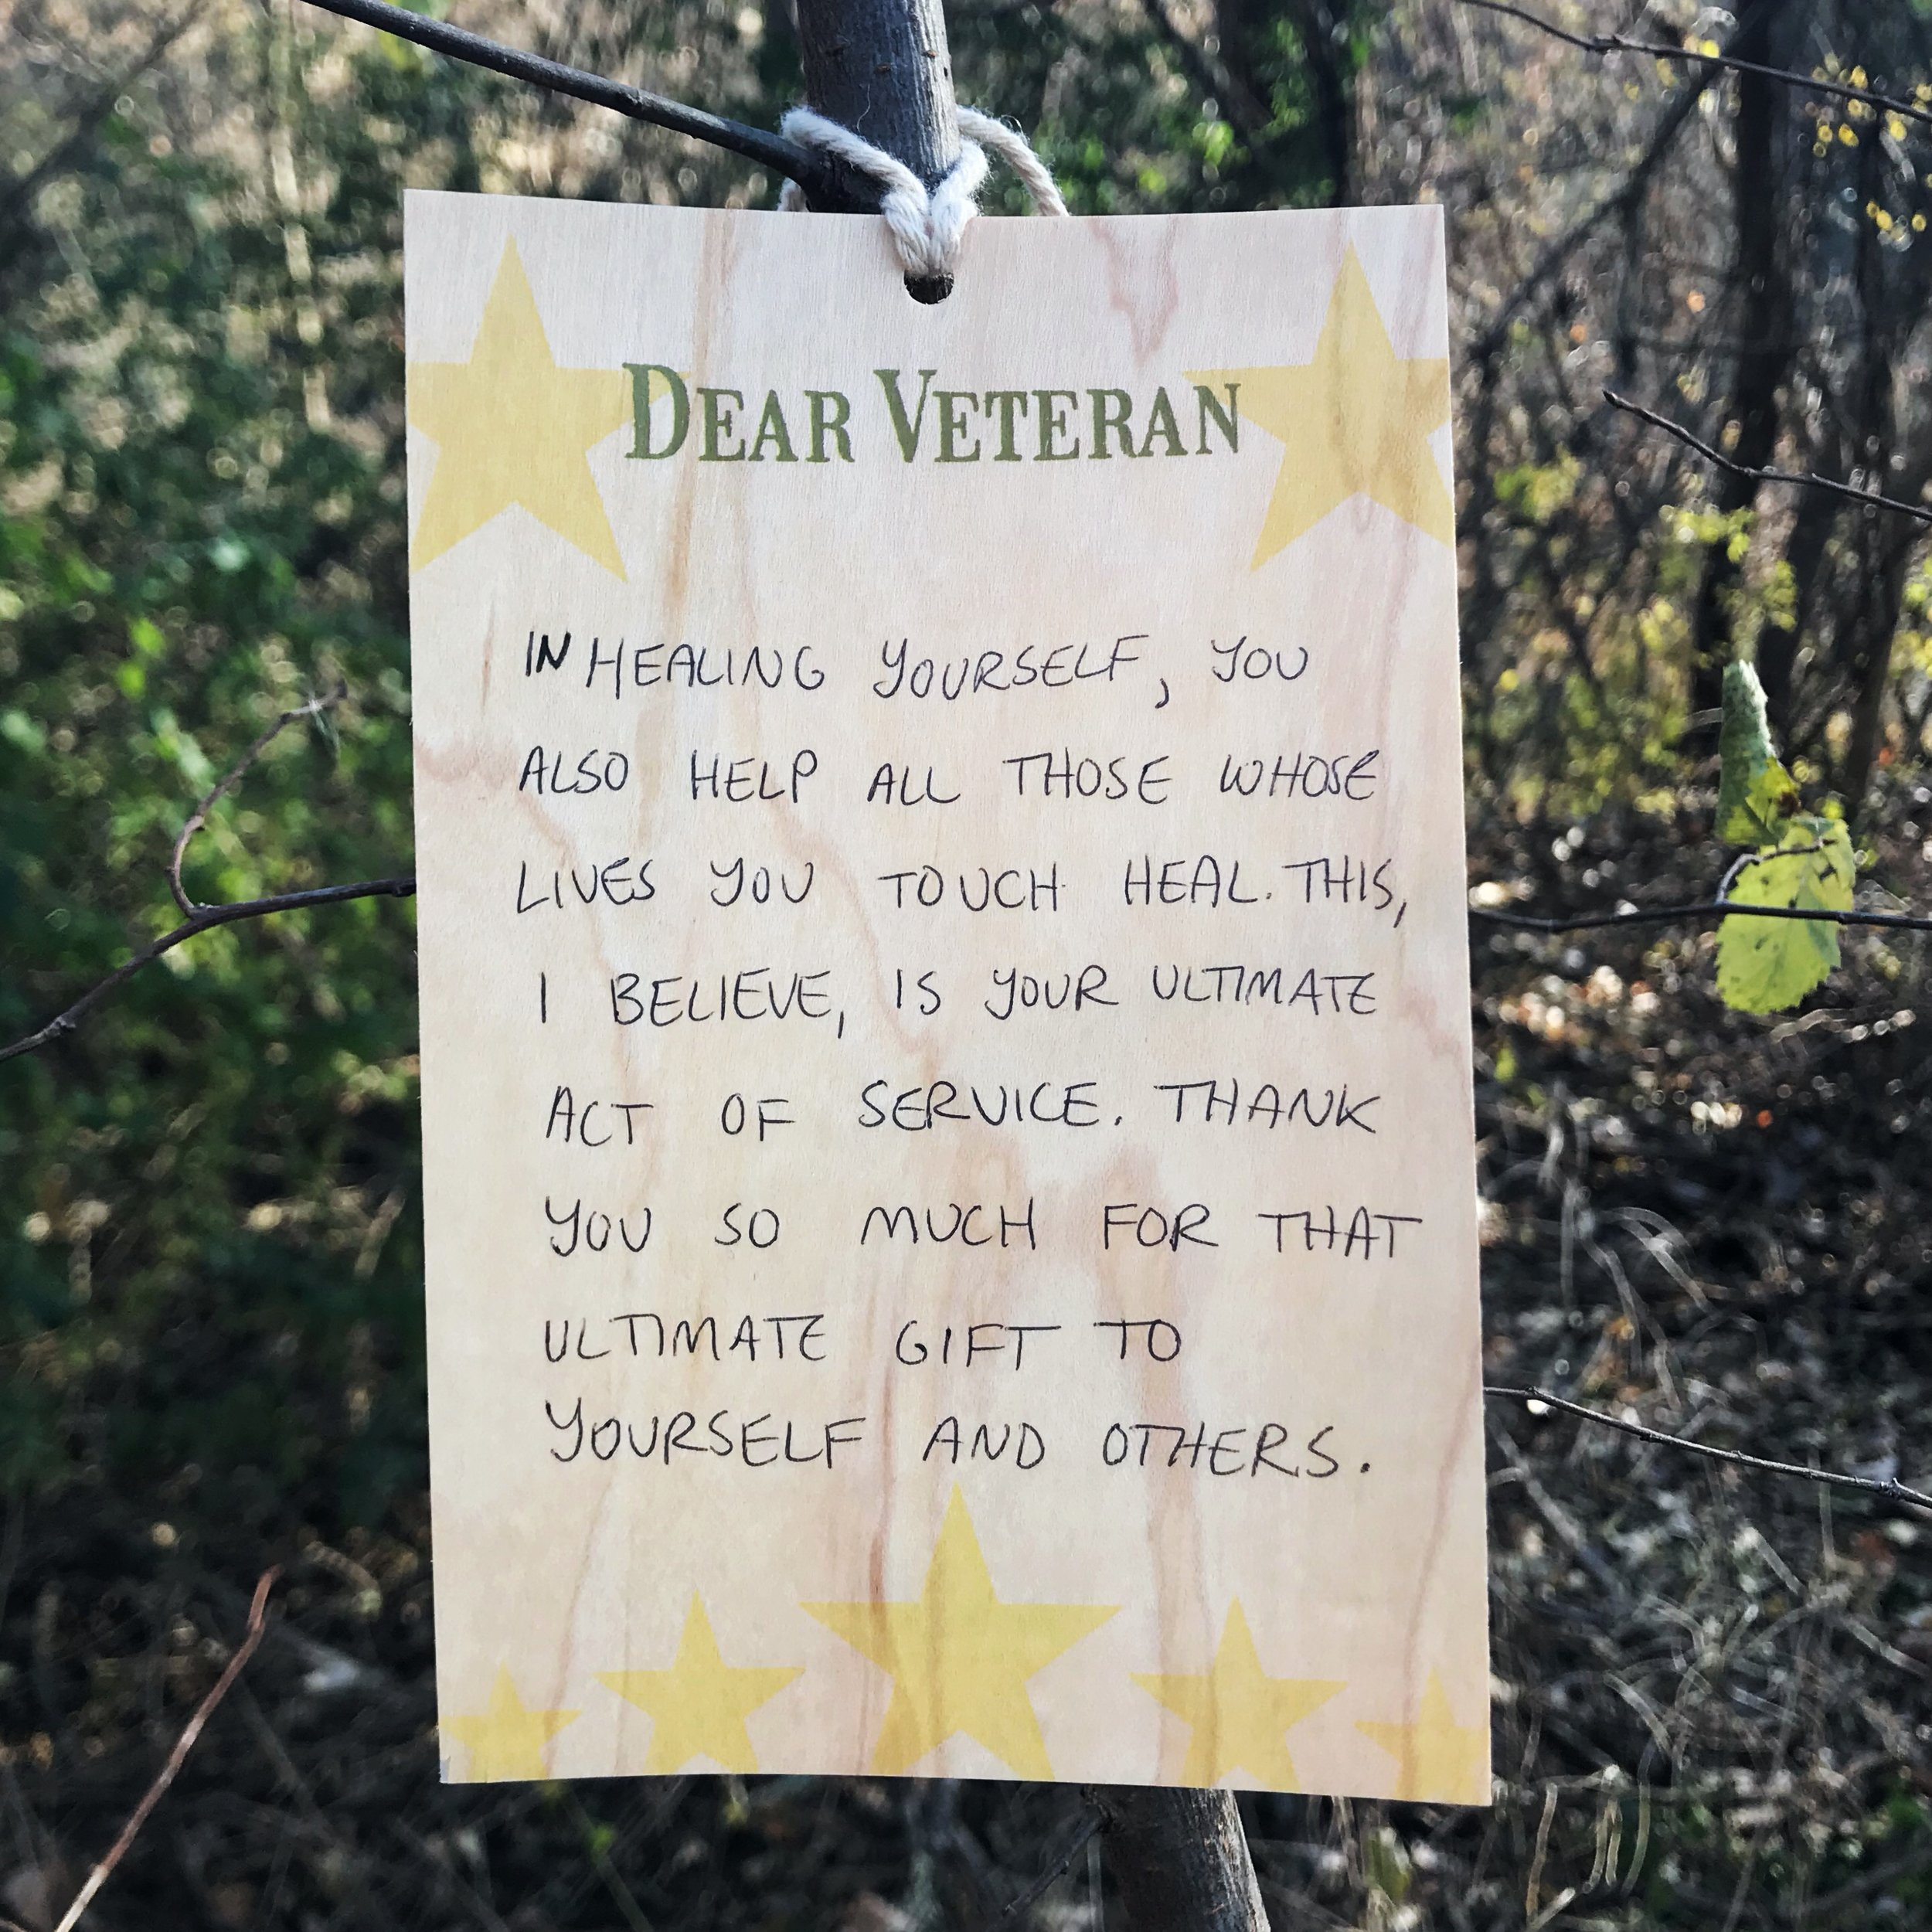 DearVeteran_NOV12_2017.JPG